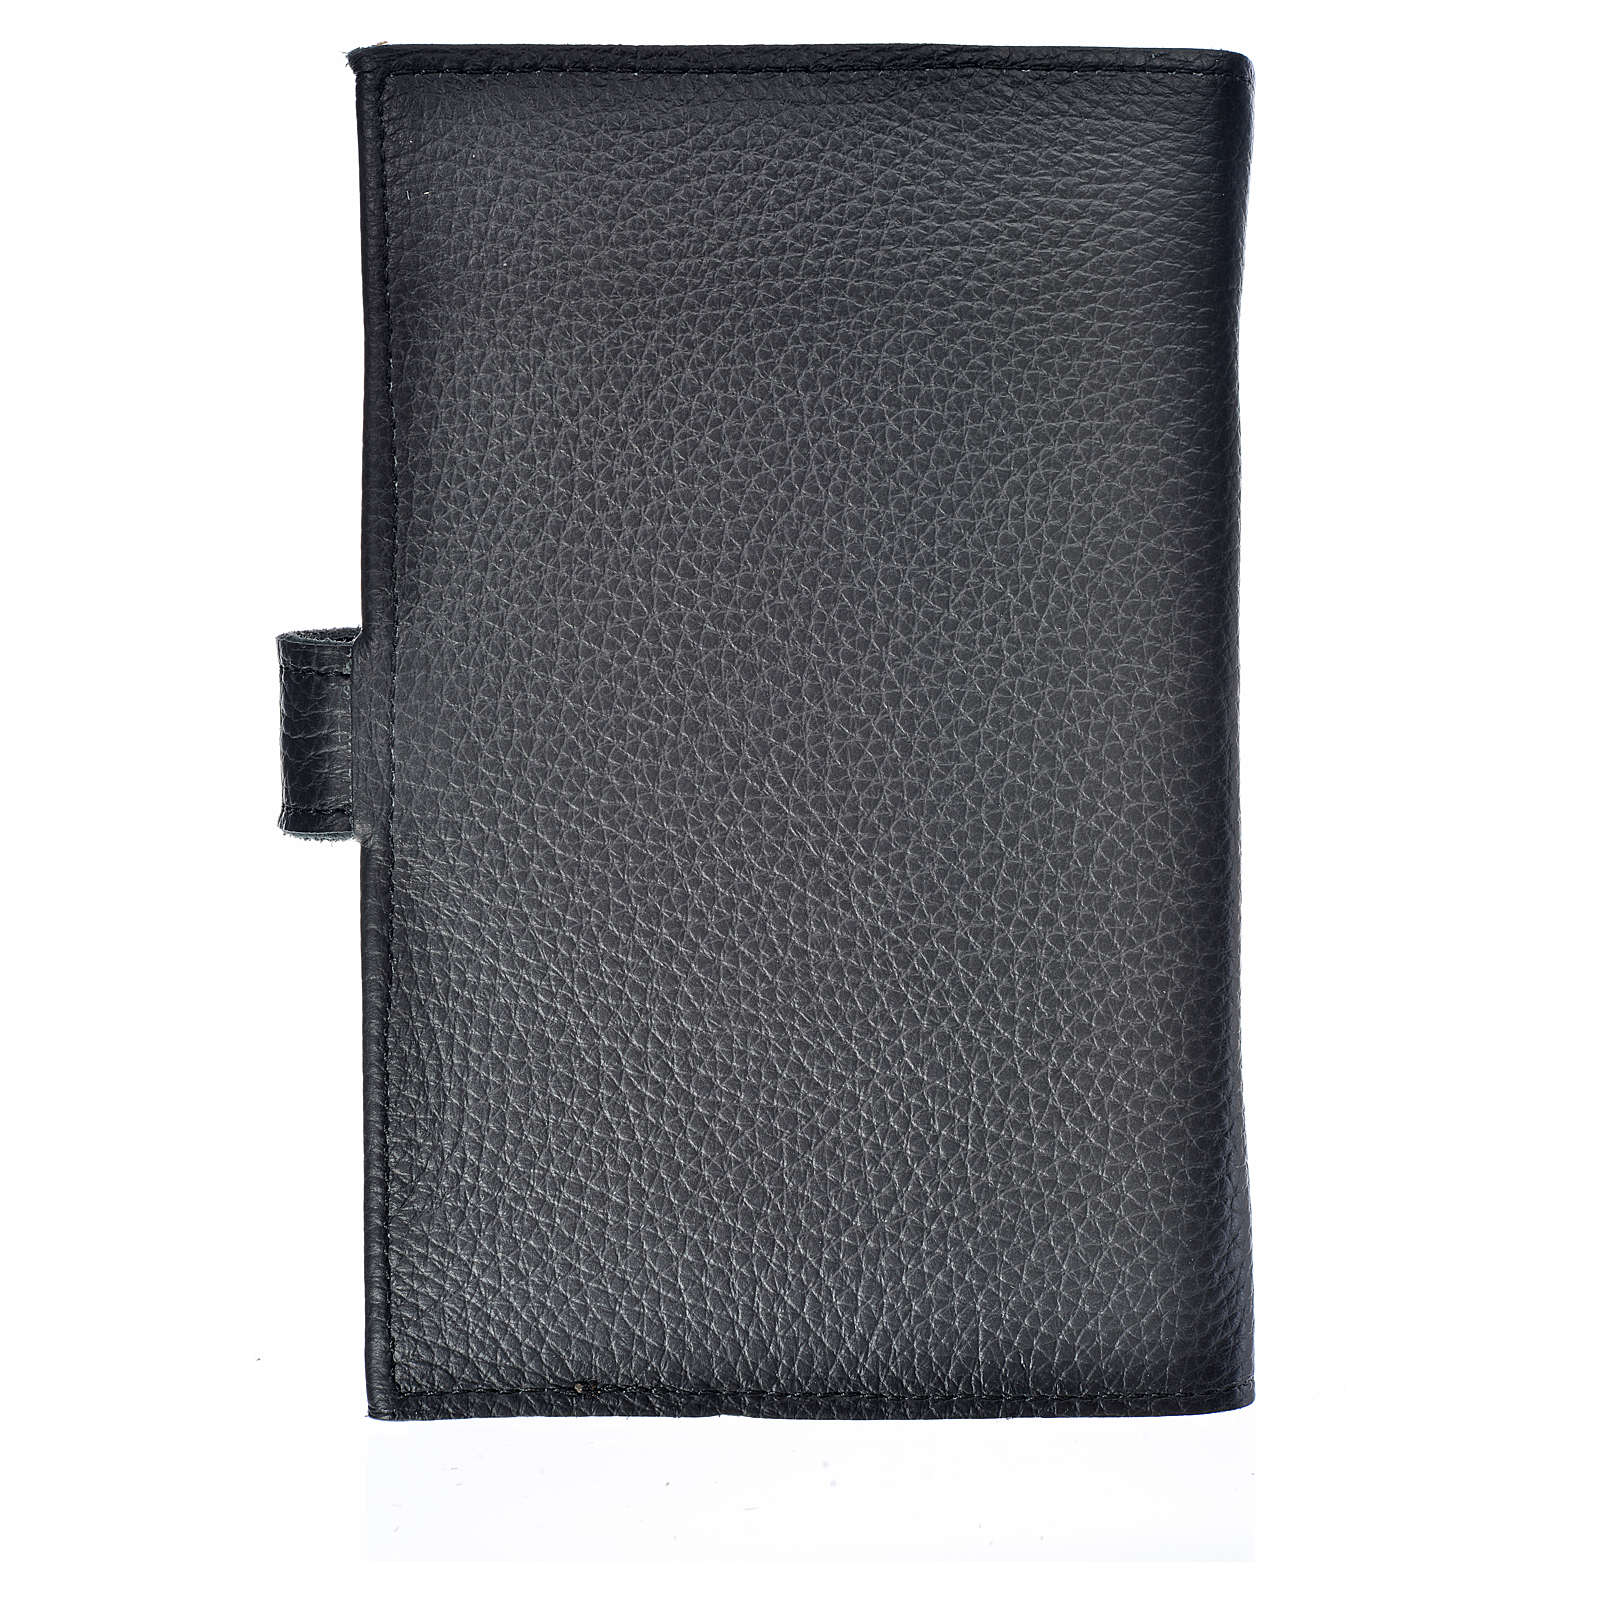 Bible cover reader edition, black leather Holy Trinity 4